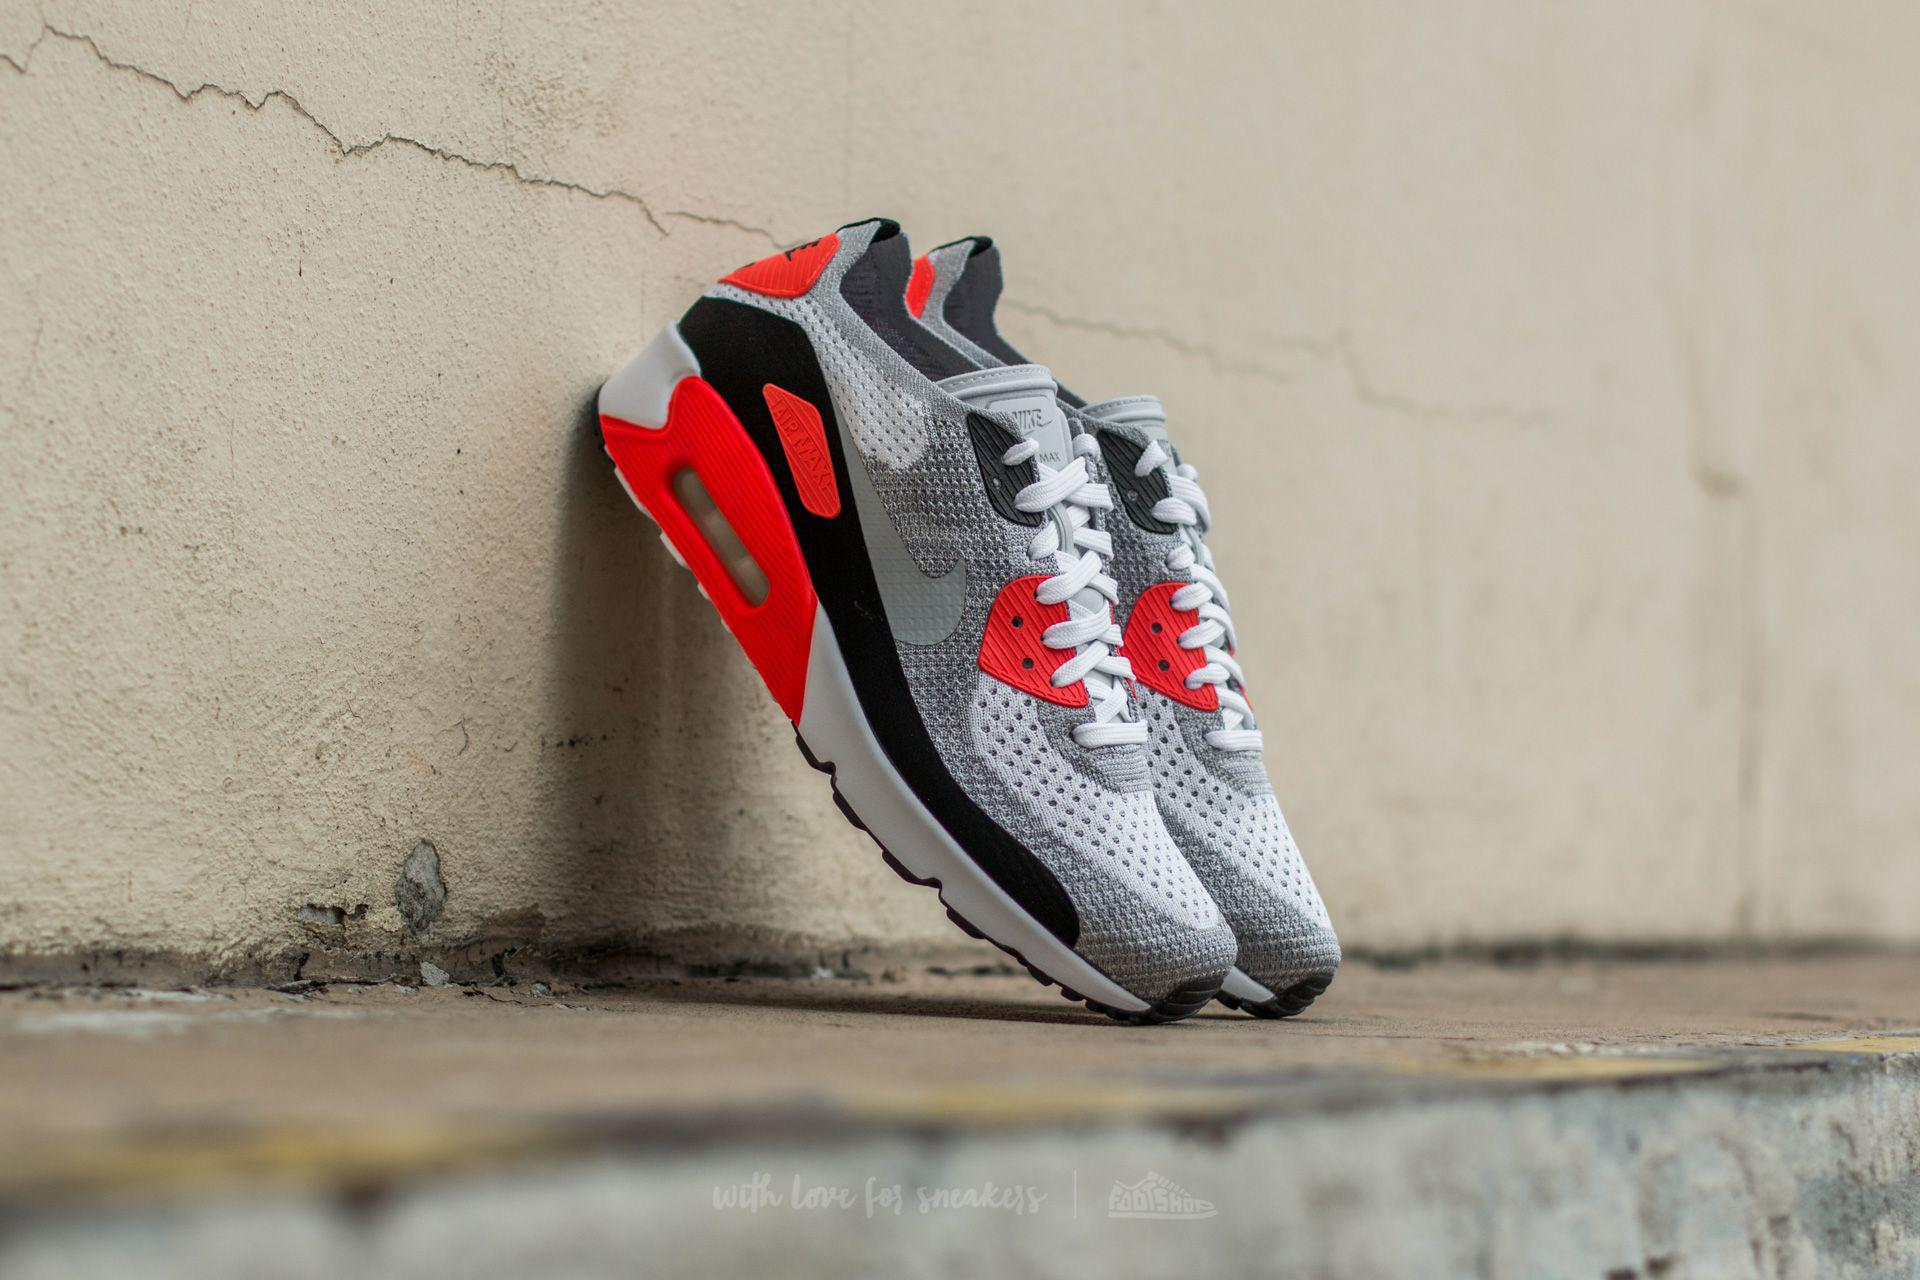 timeless design 4c103 fe372 Lyst - Nike Air Max 90 Ultra 2.0 Flyknit White  Wolf Grey-bright ...